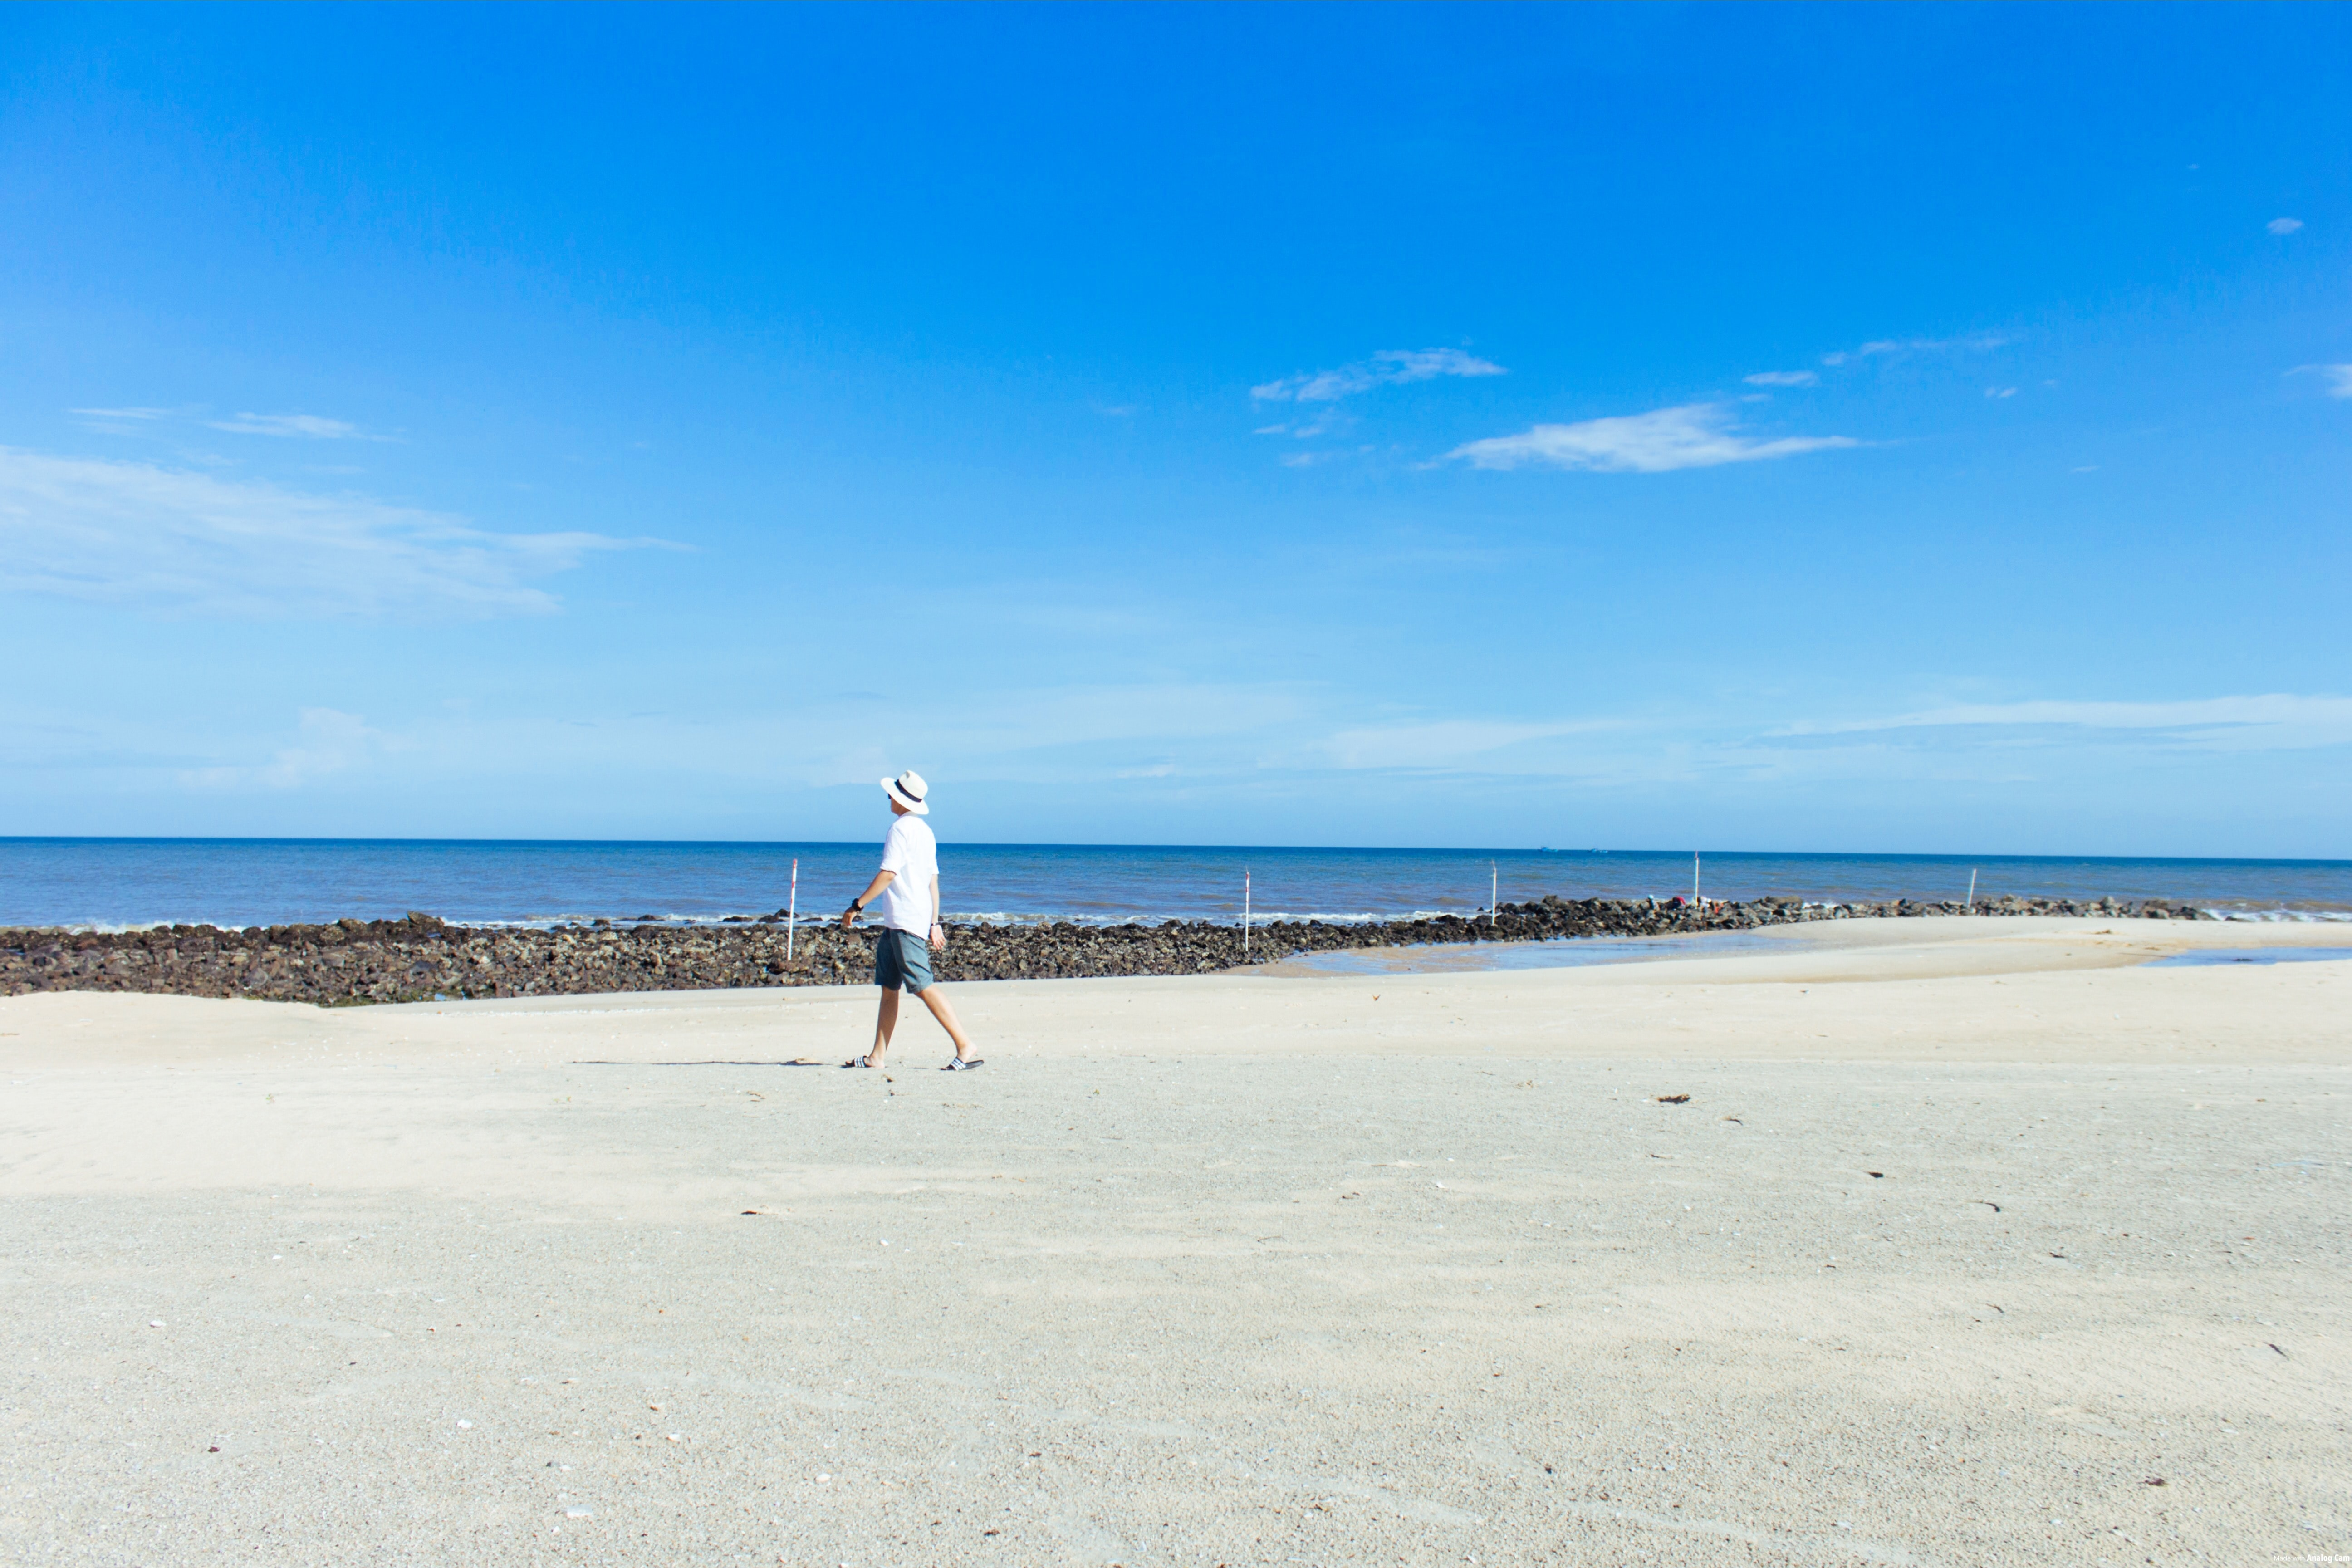 man walking on seashore under blue sky